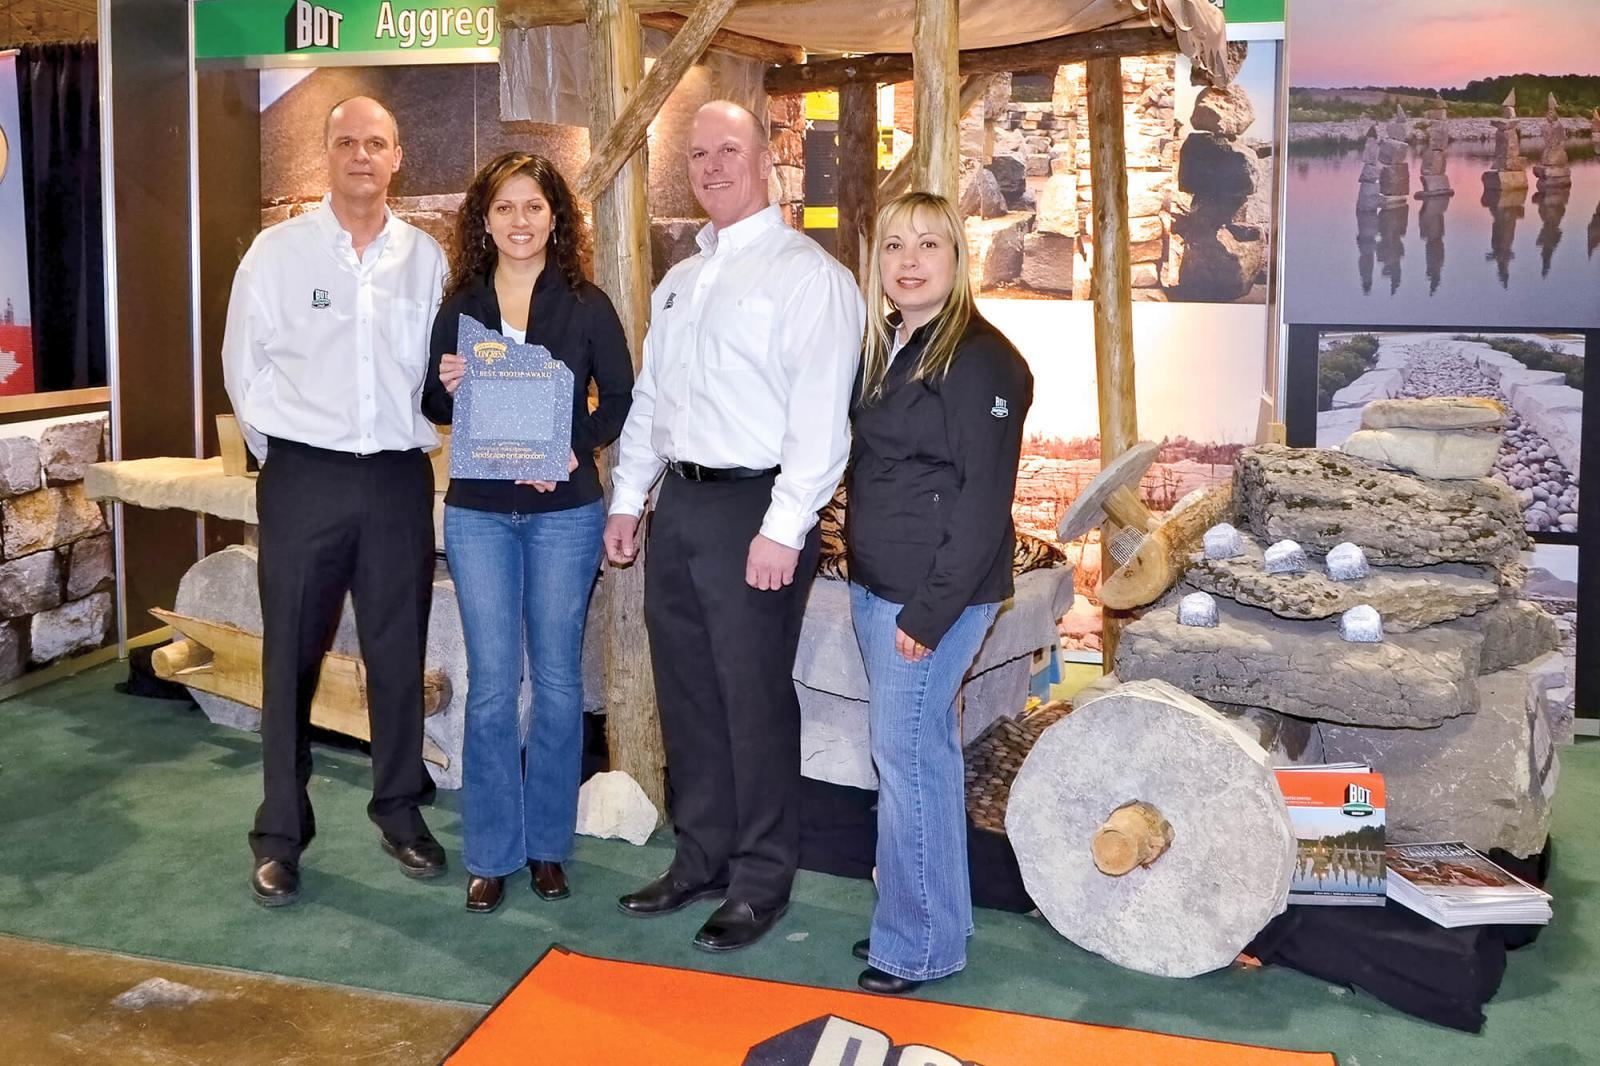 BOT Aggregates of Orillia, Ont., took home the prize for the best booth between 100 and 400 sq,. ft. The Fred Flintstone-type car drew a great deal of attention.